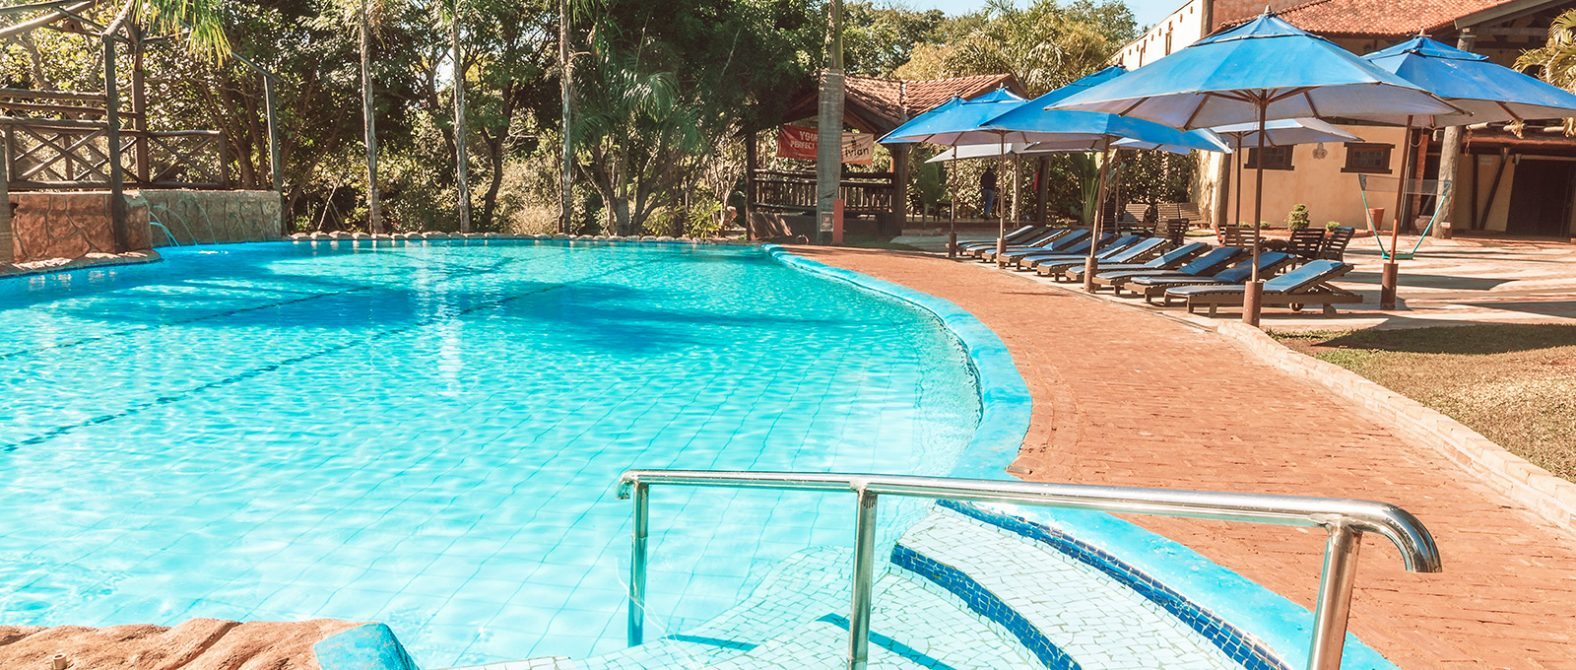 Piscina do Recanto Alvorada Eco Resort